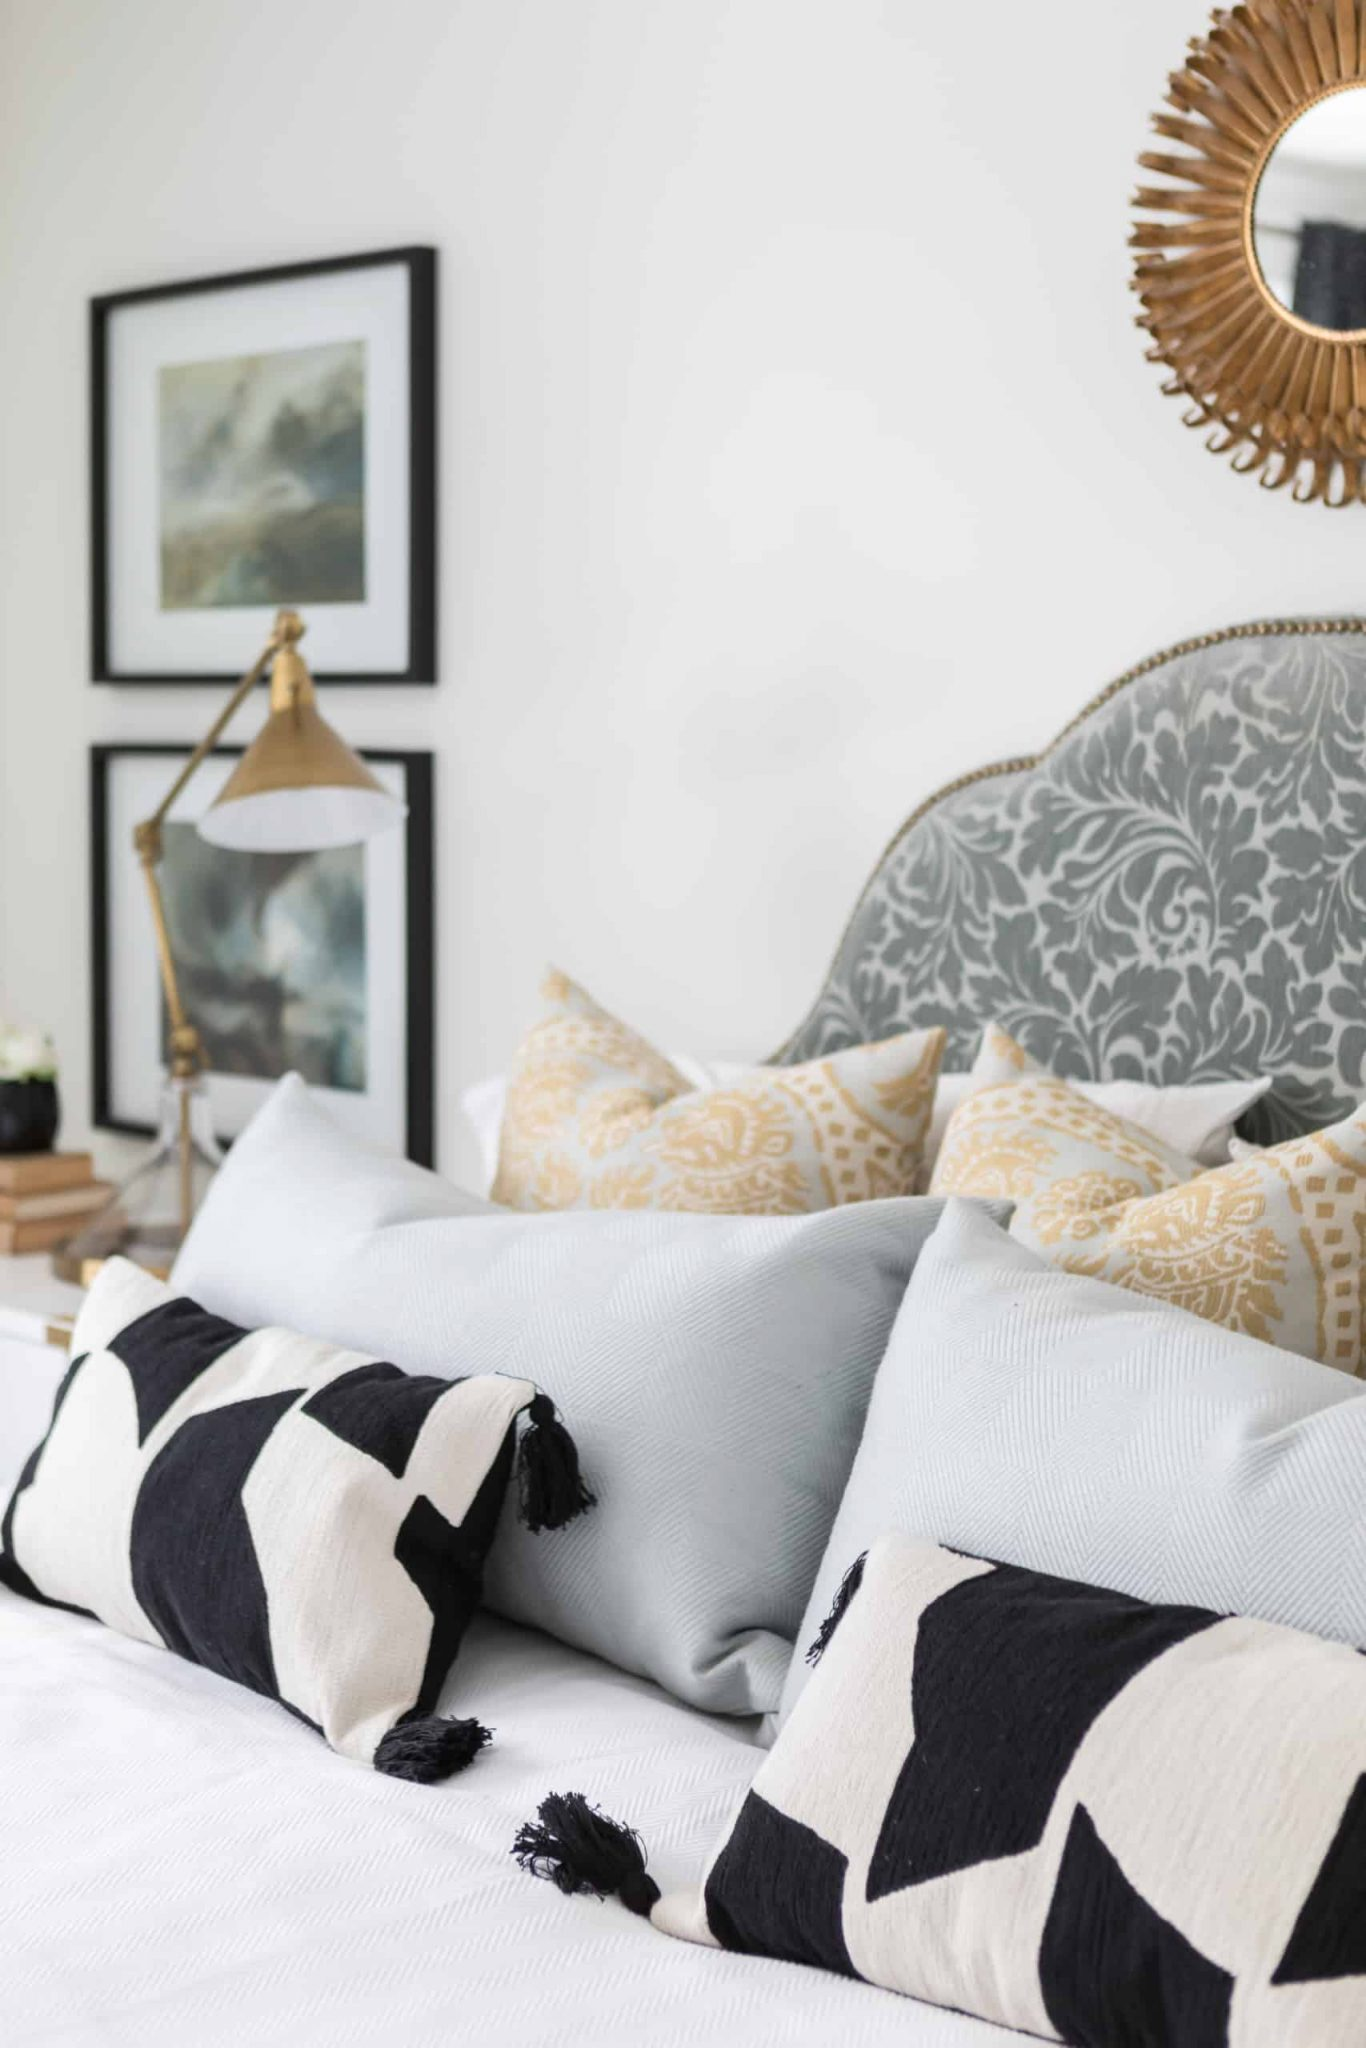 Array of pillows on a large bed